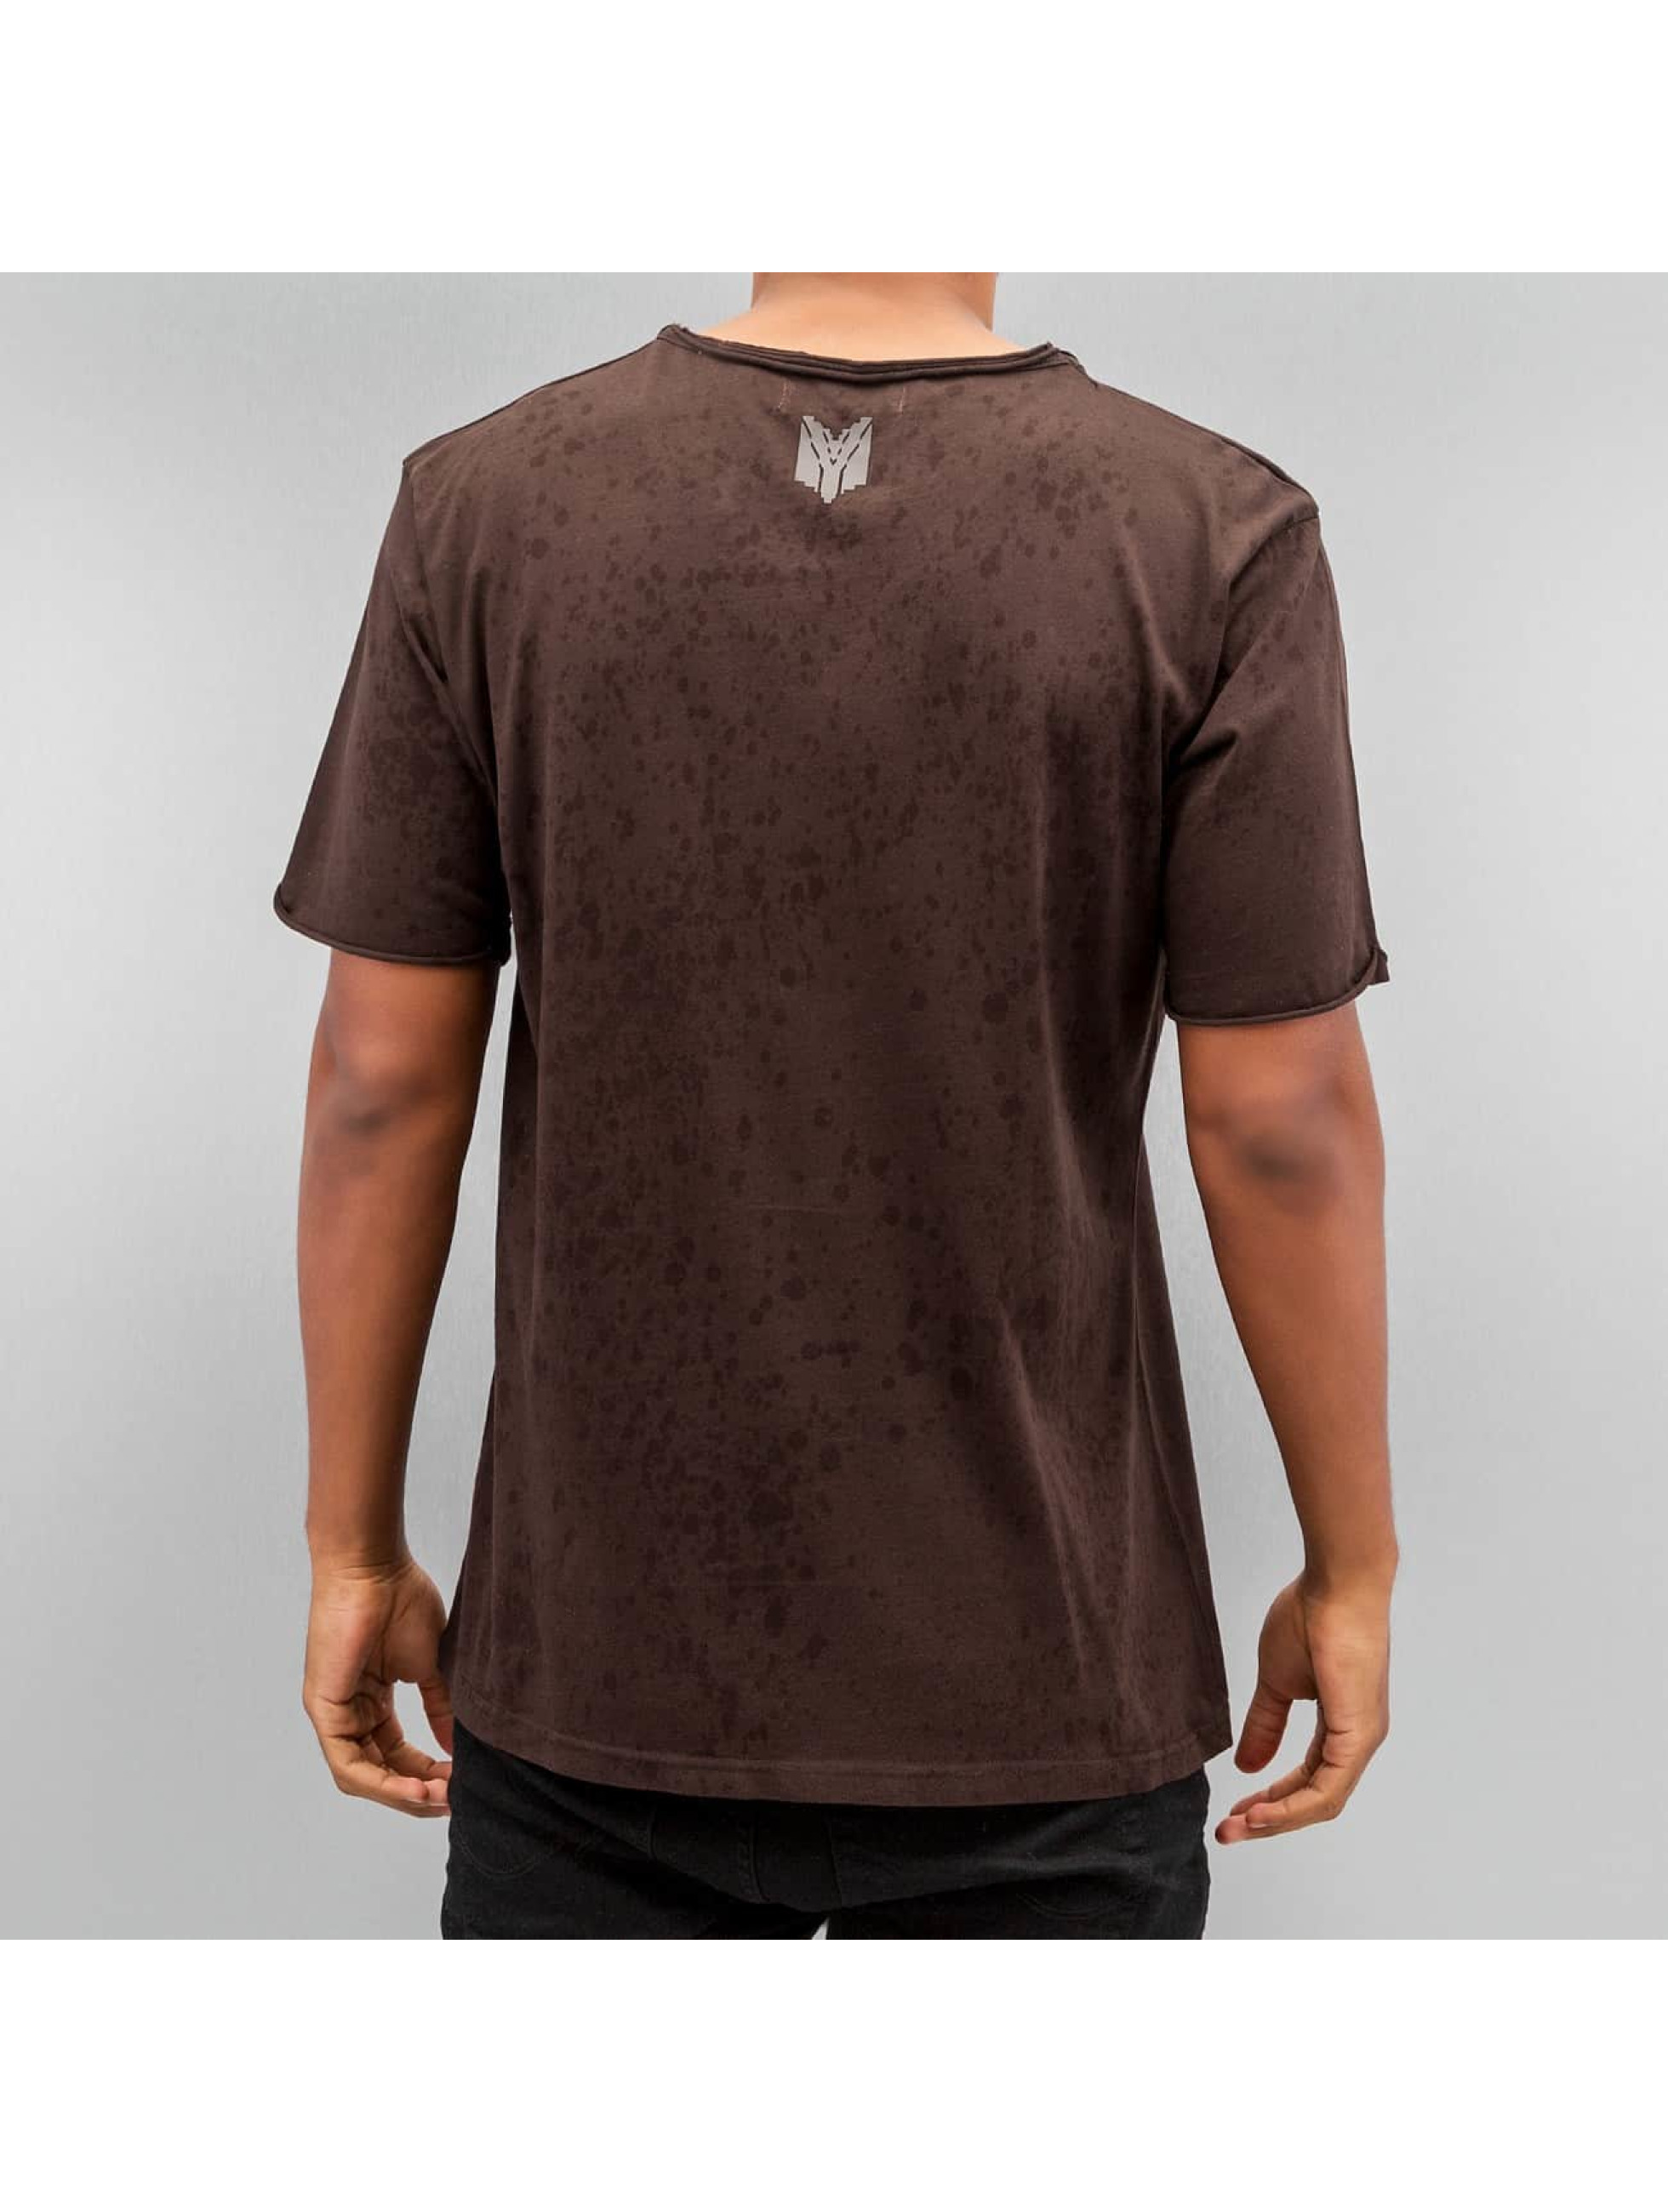 Yezz T-Shirt Splash brun